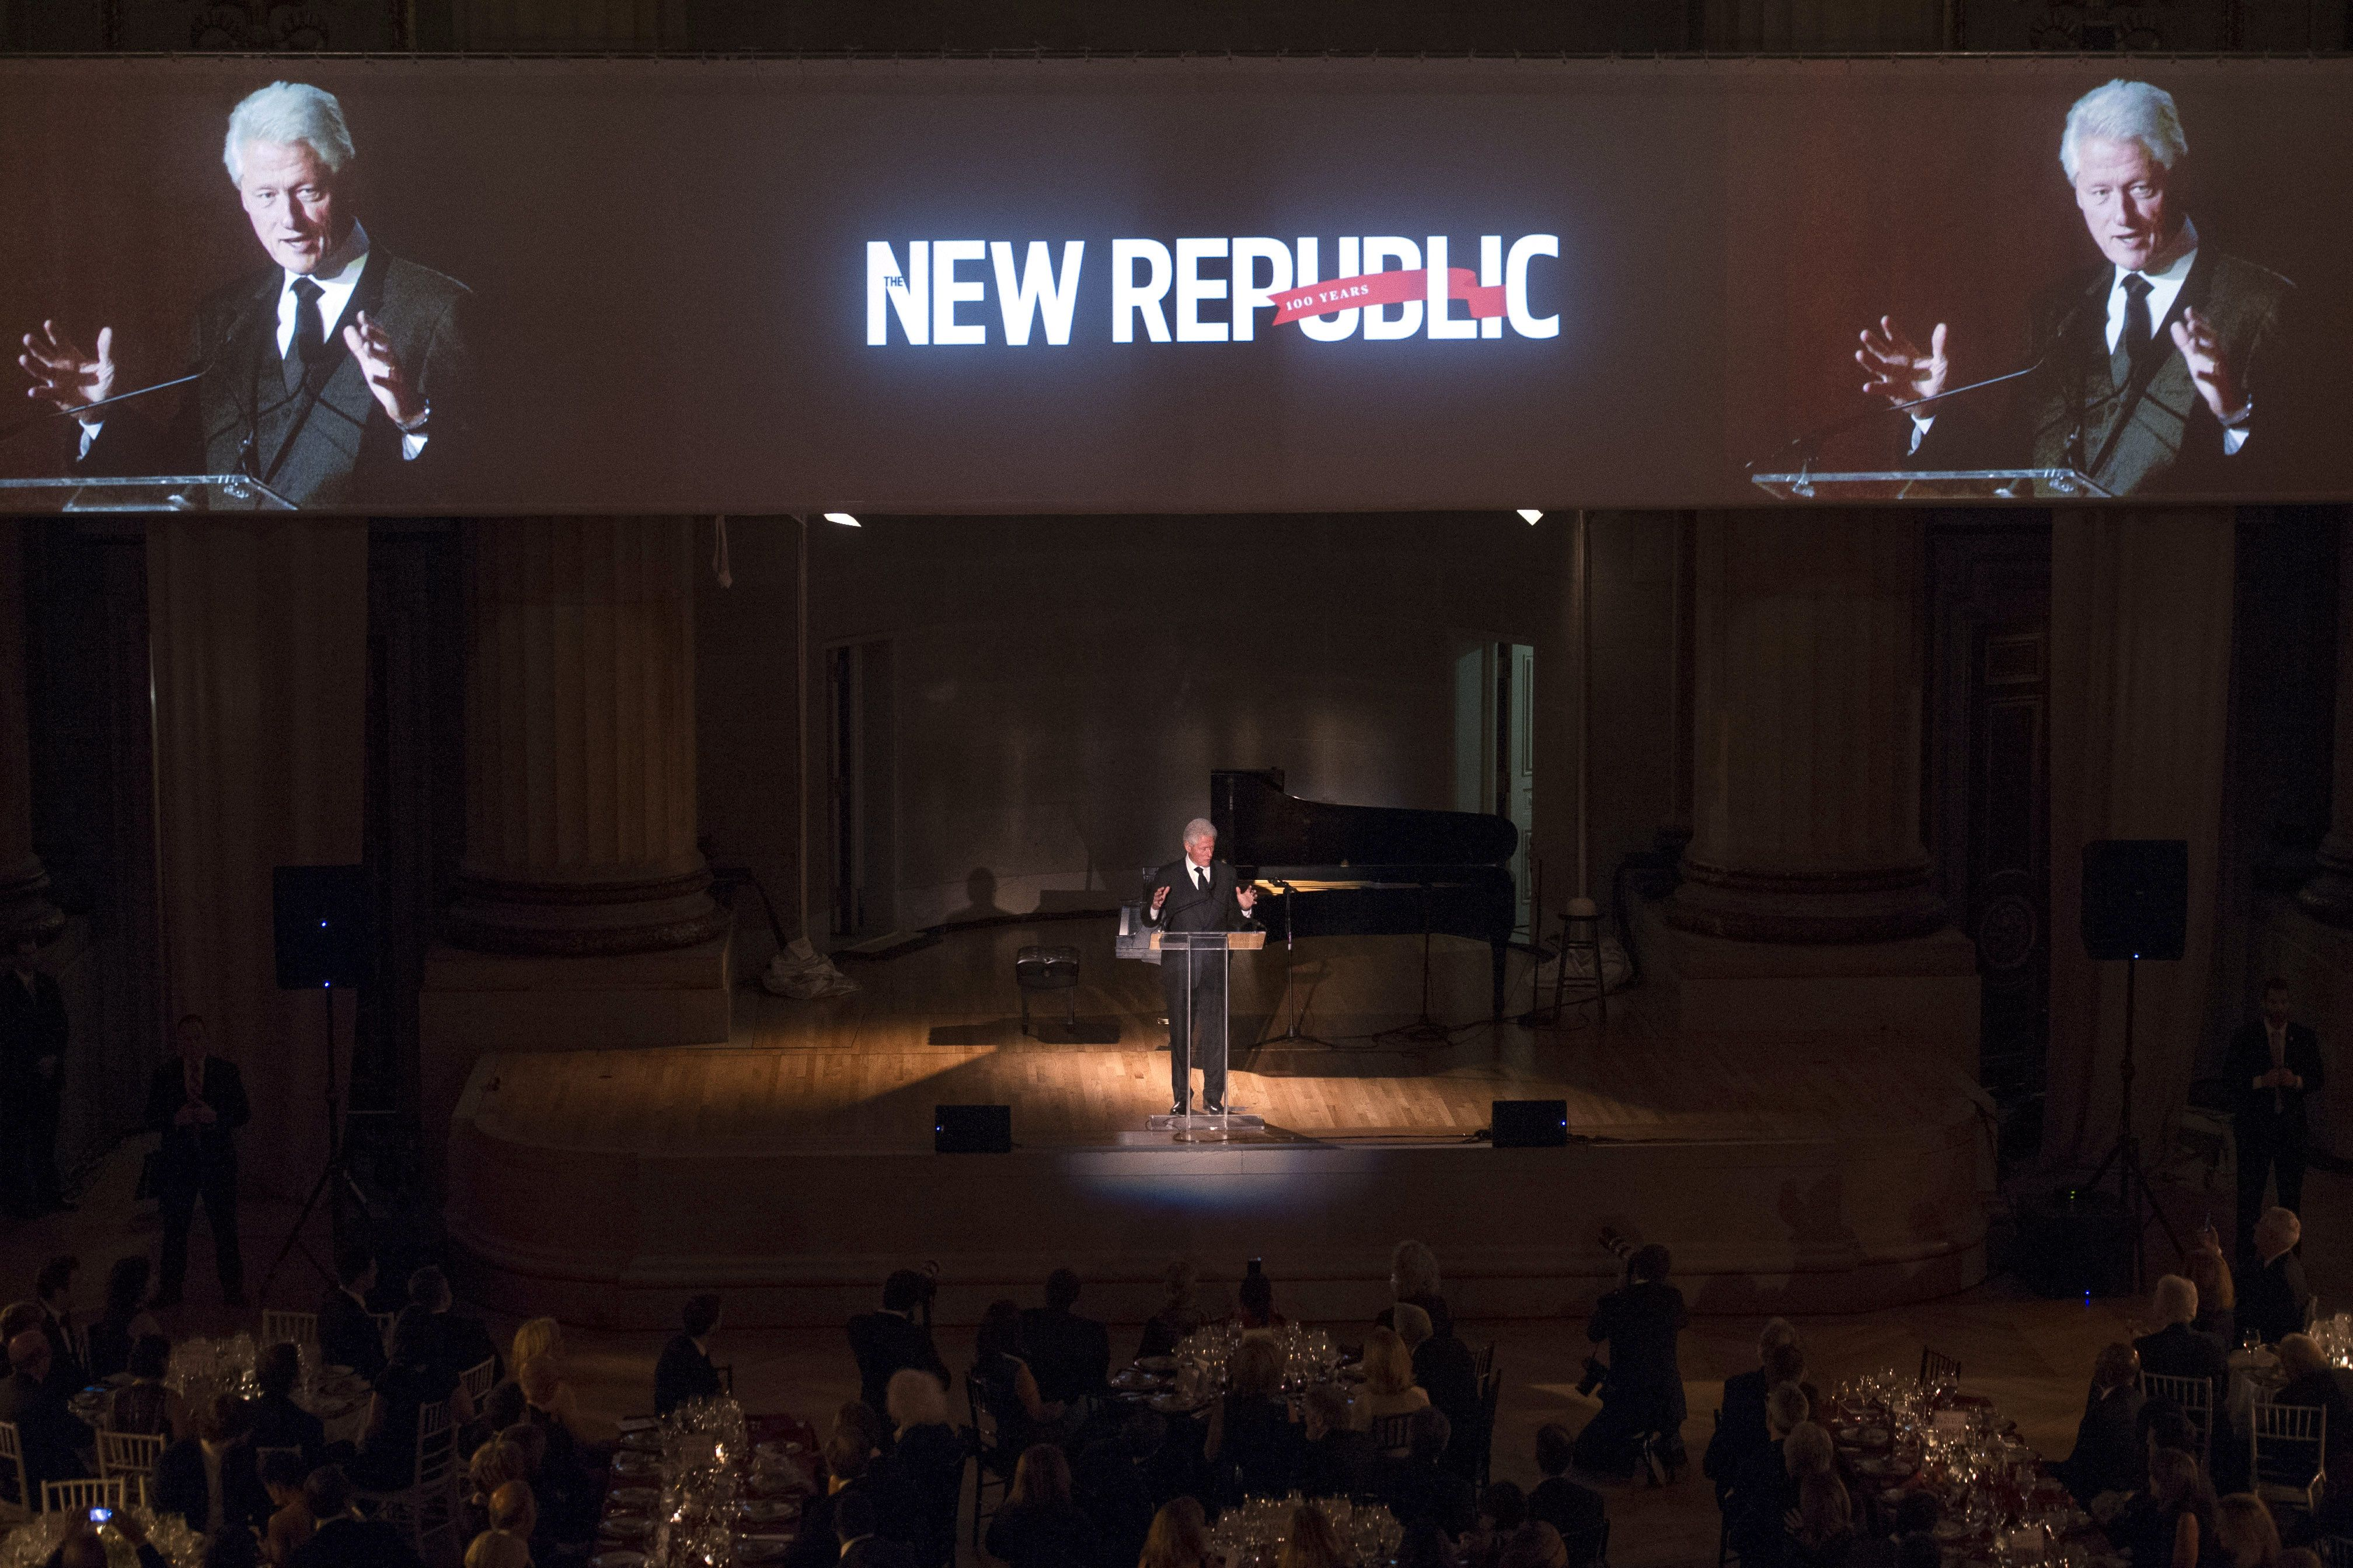 Former President Bill Clinton gives the keynote speech at the New Republic Centennial Gala Dinner at the Andrew Mellon Auditorium in Washington, Wednesday, Nov. 19, 2014. (AP Photo/Cliff Owen)